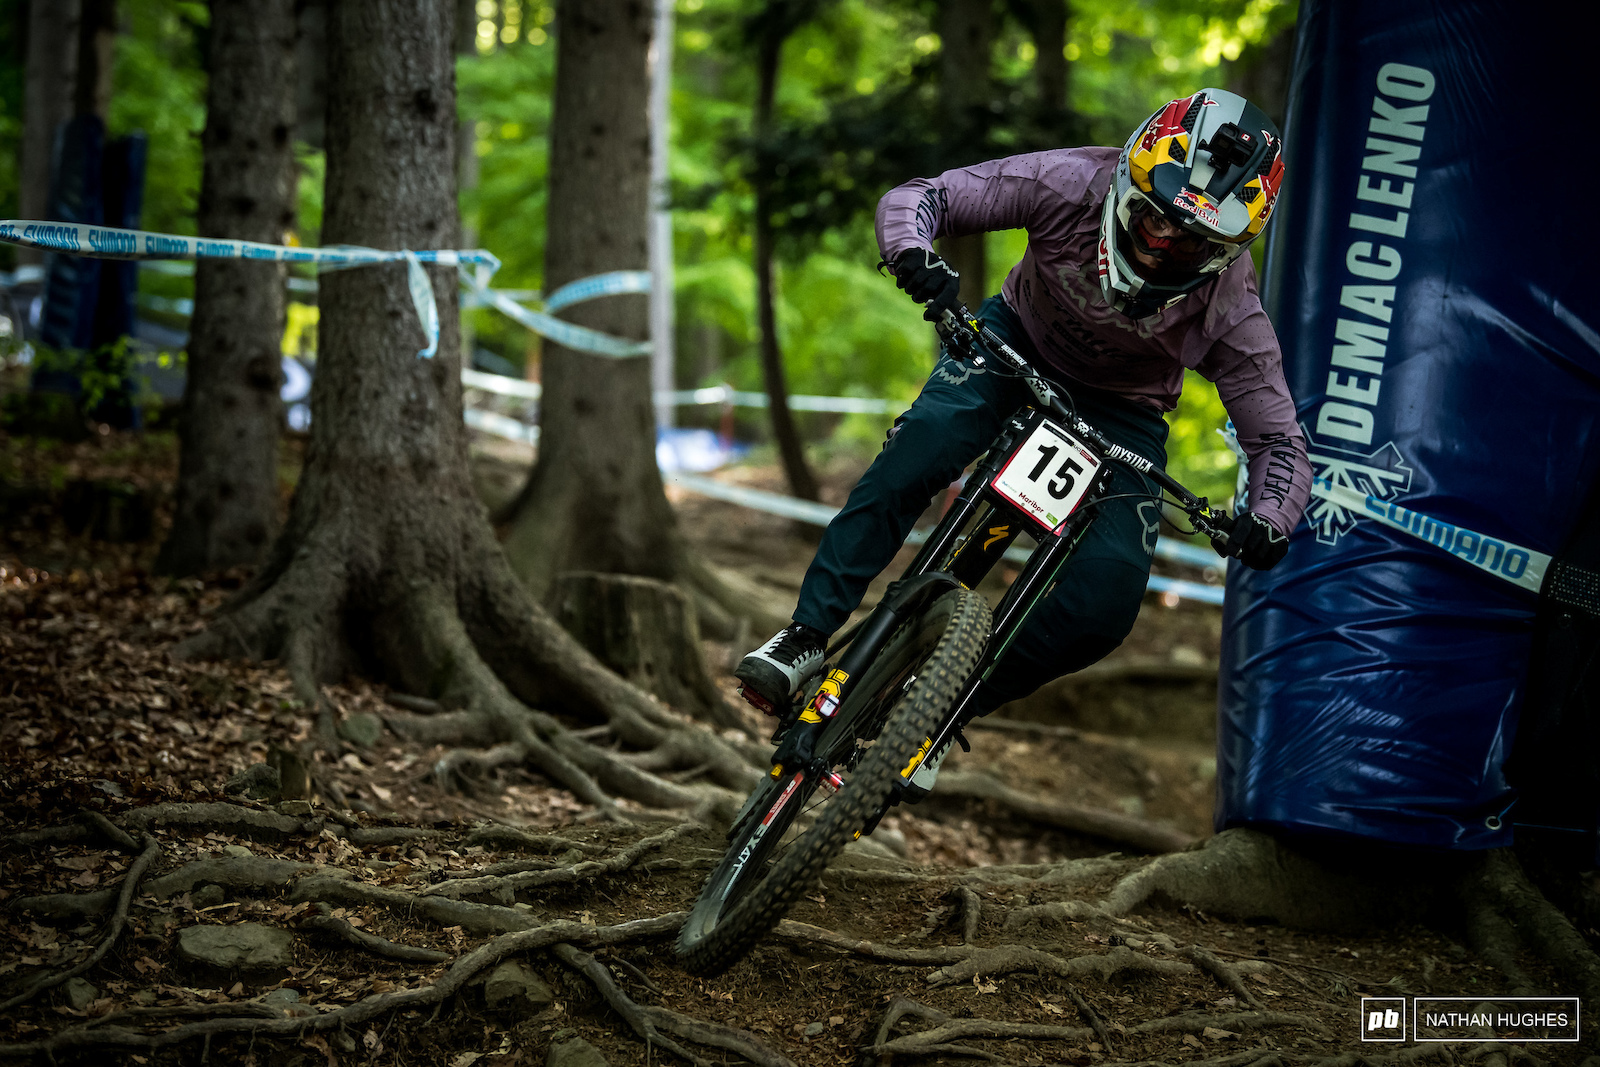 Finn Iles noe has another season of experience under his belt in elites and looks extra dangerous already.